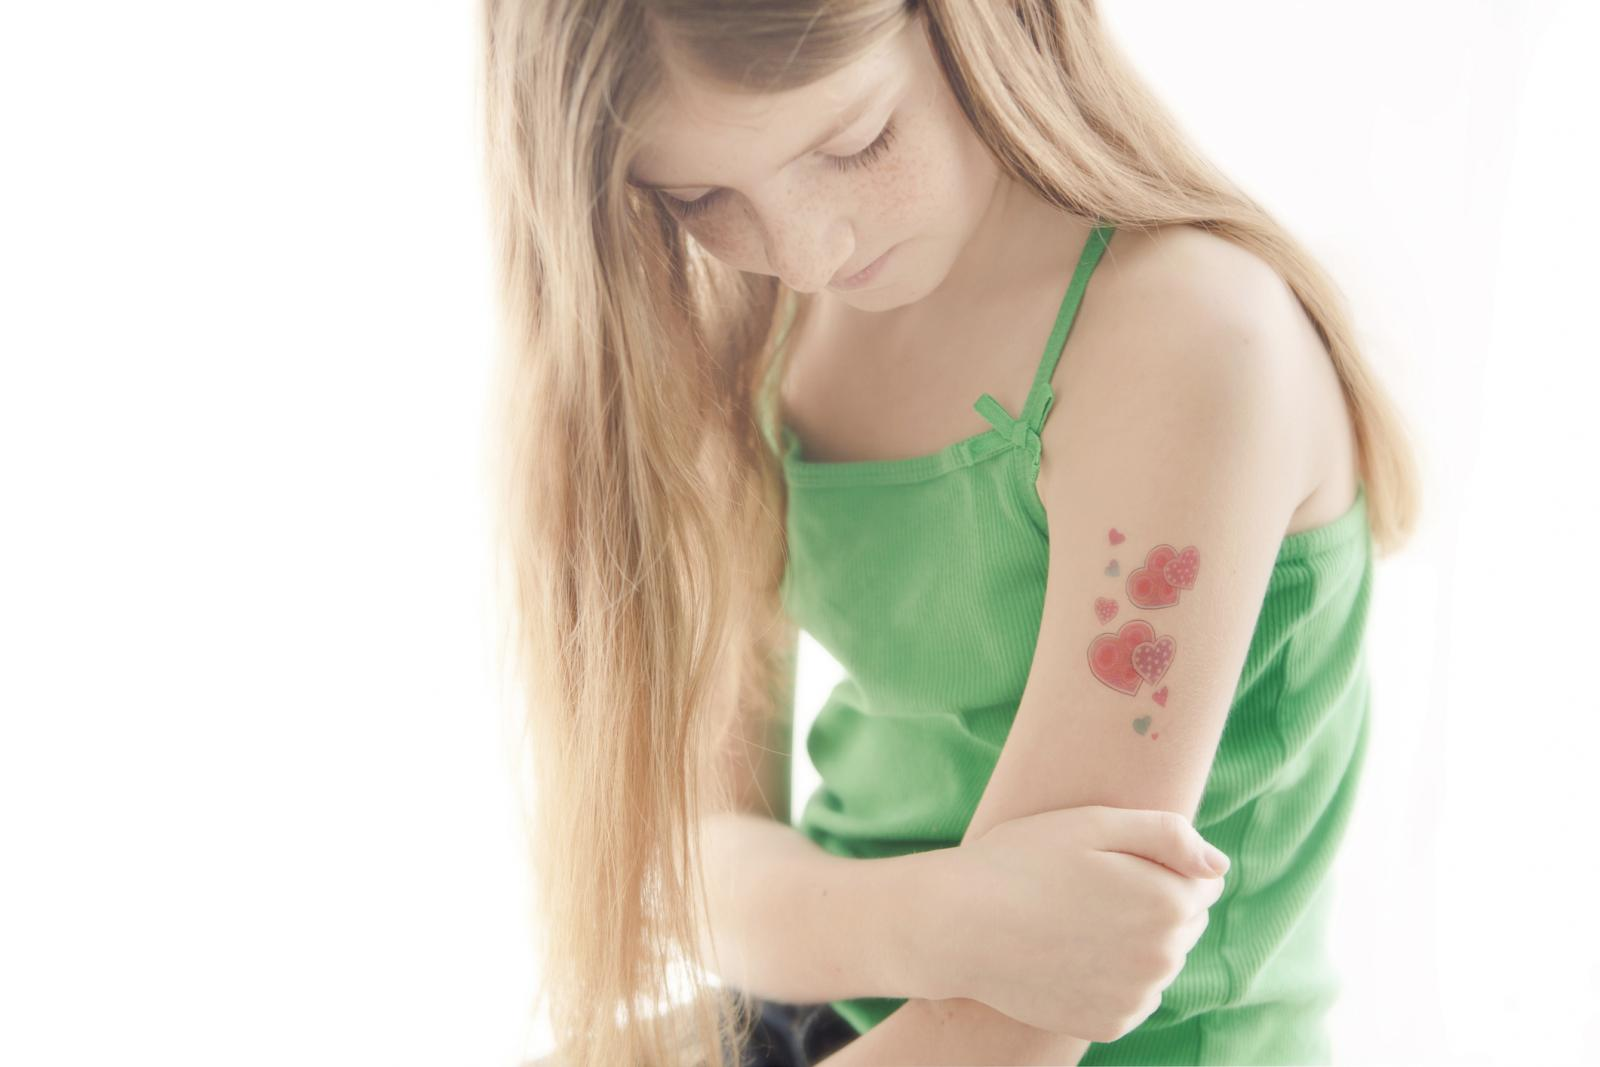 Girl with temporary tattoo on her arm